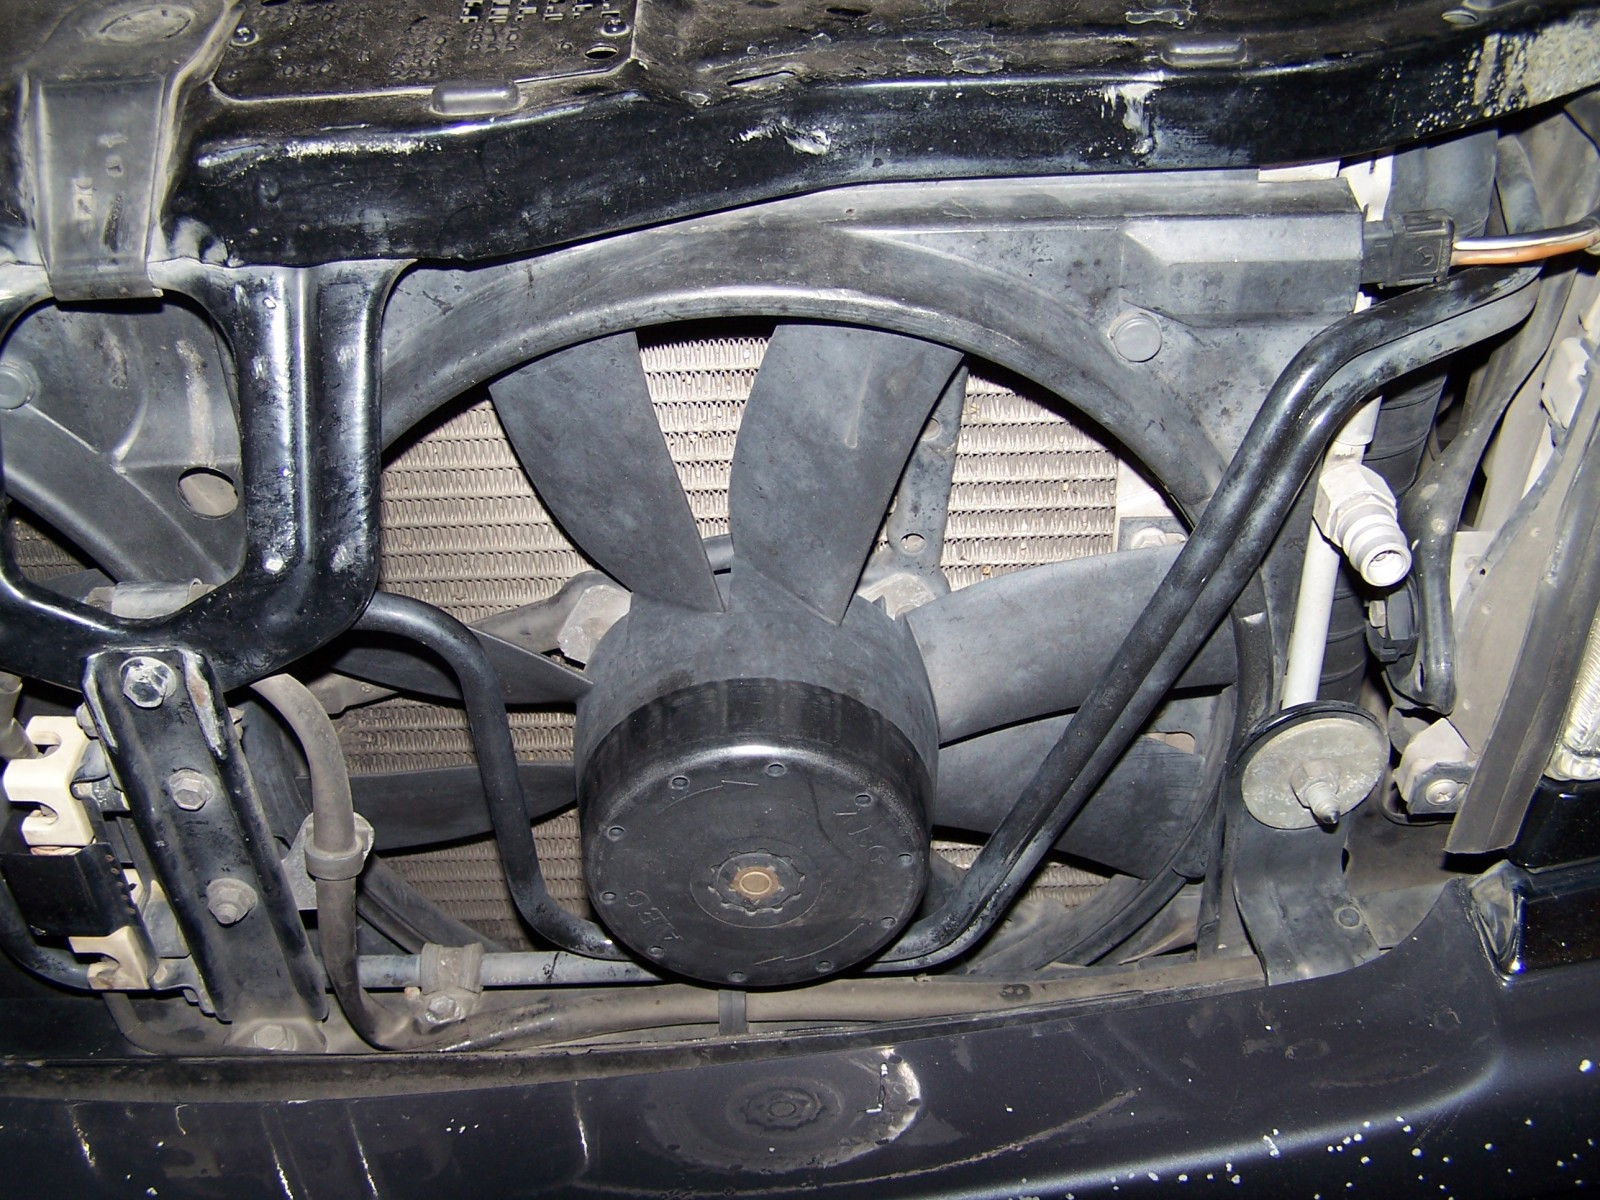 Replace Aux Radiator Fan Motor 1995 C280 - Mercedes-Benz Forum